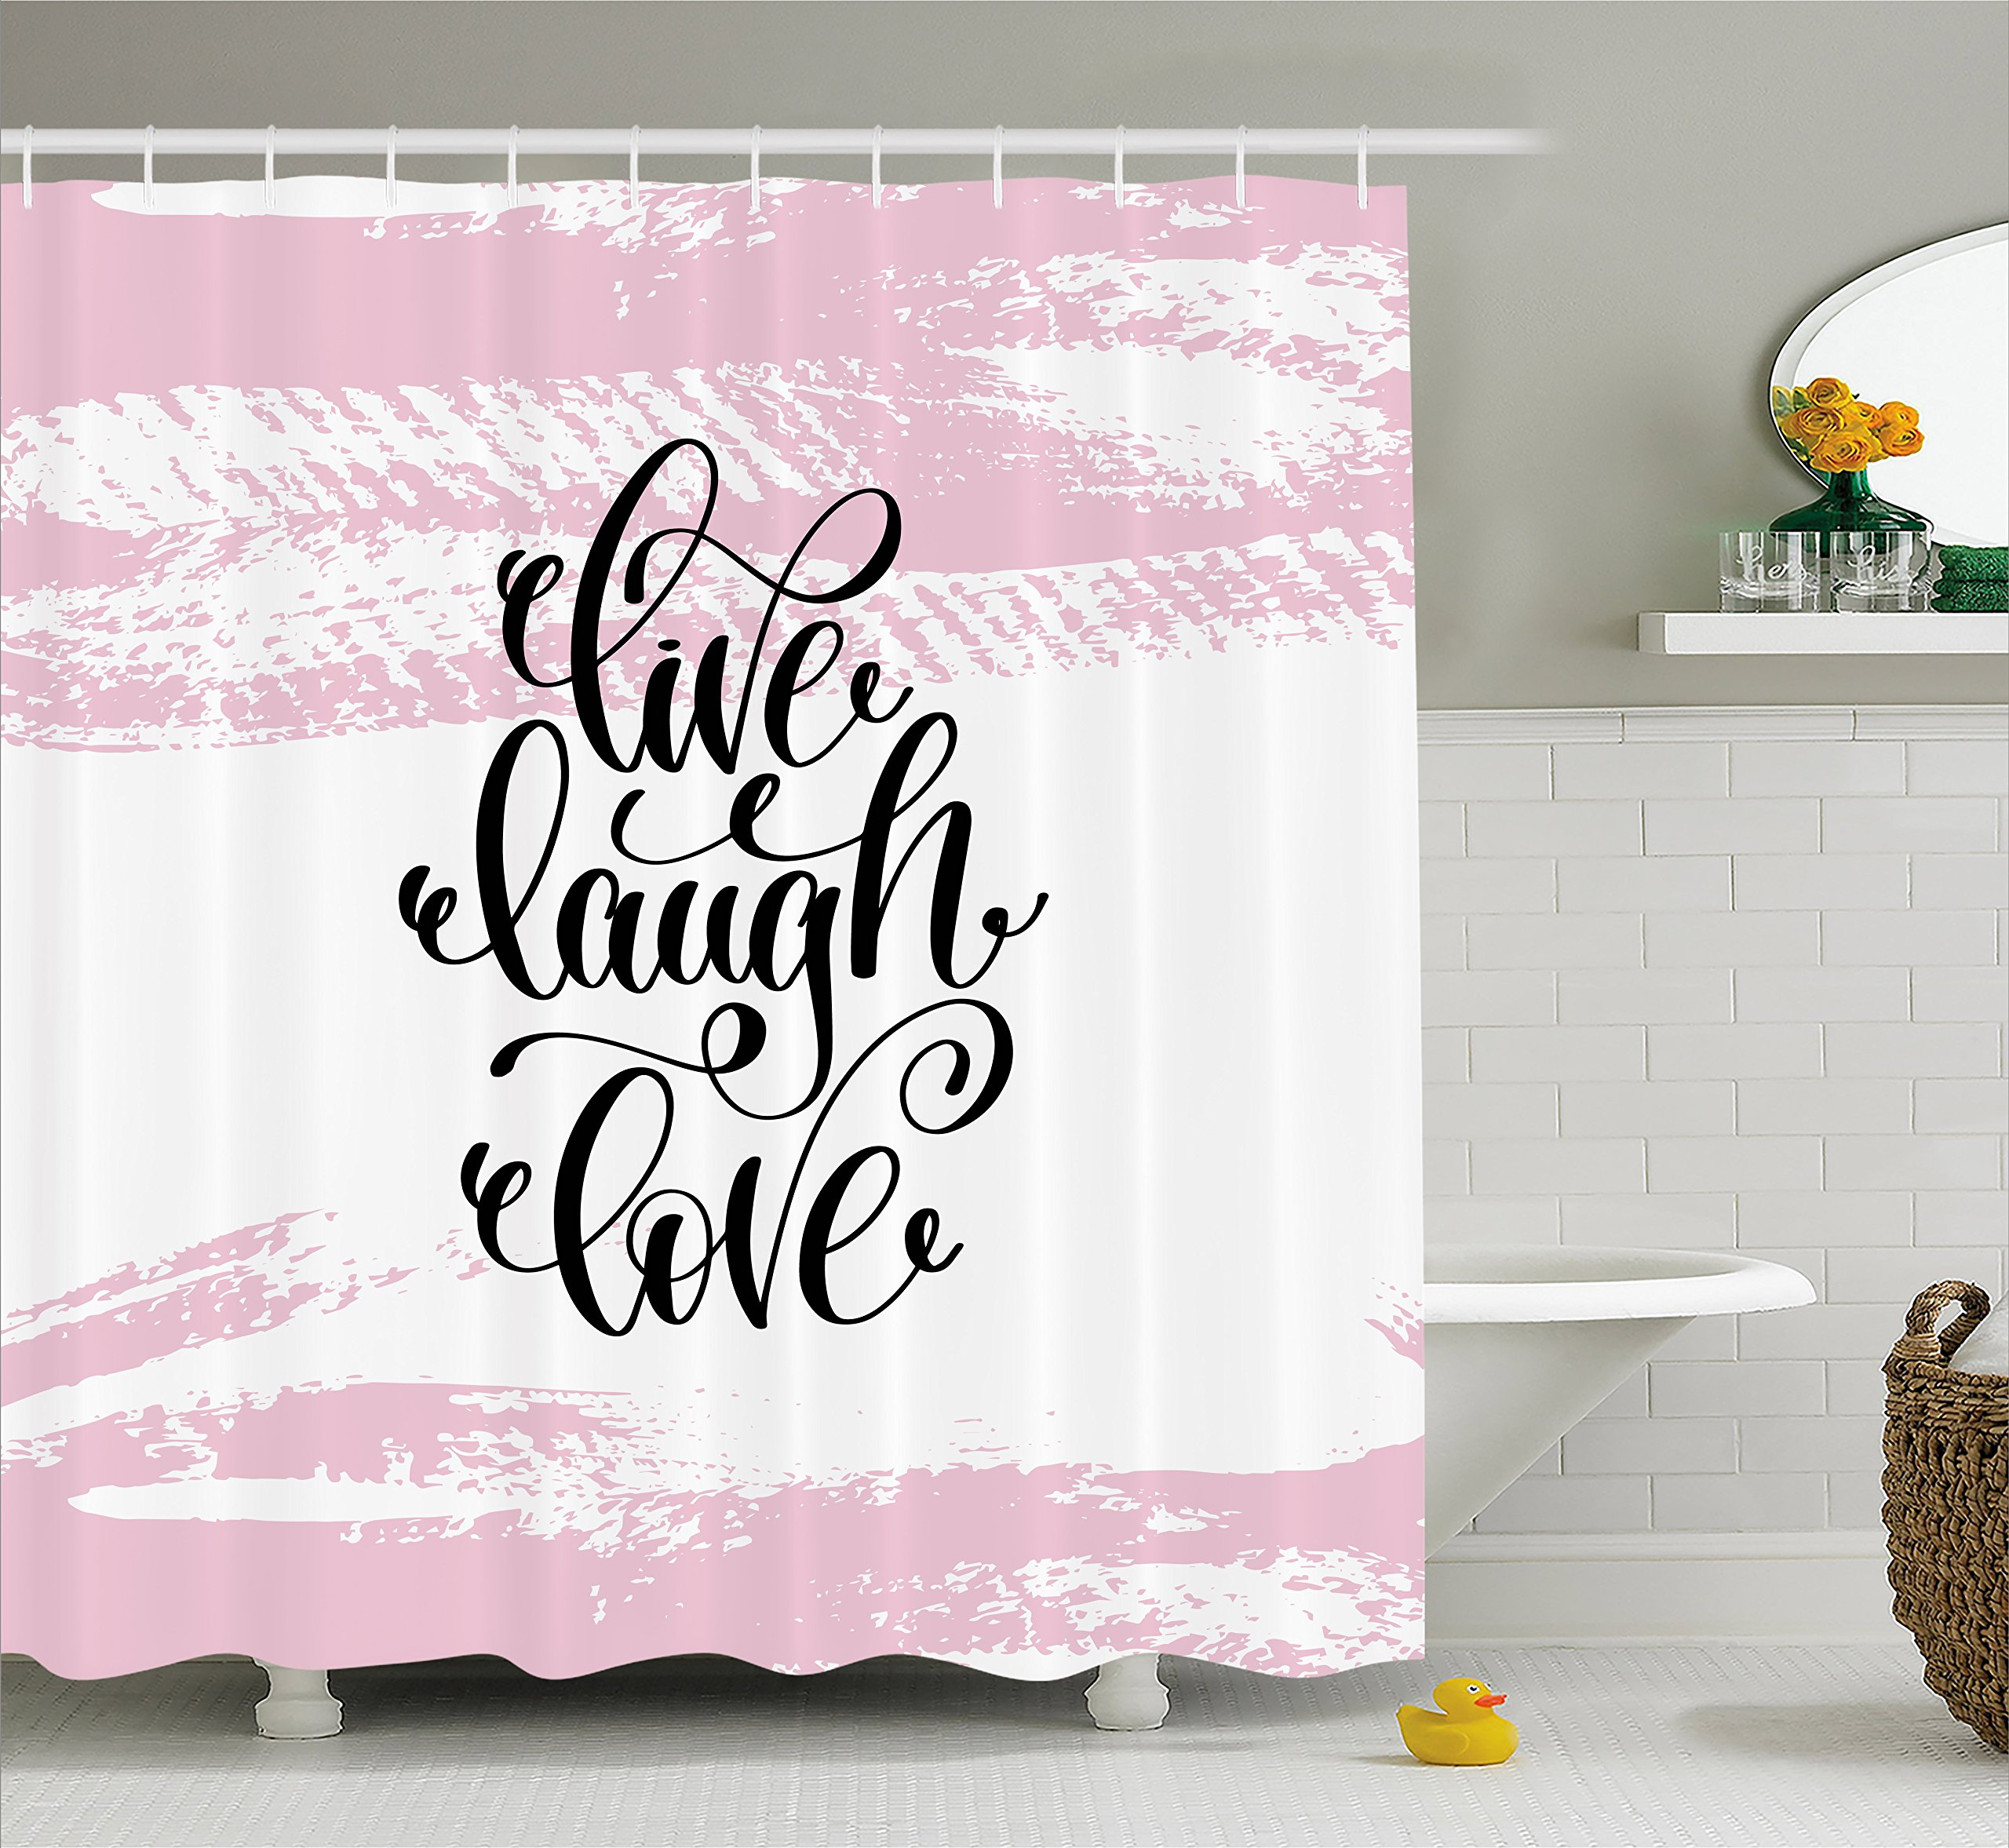 Ambesonne Live Laugh Love Shower Curtain, Abstract Pink Toned Brush Strokes Backdrop with Hand Lettering Quote, Cloth Fabric Bathroom Decor Set with Hooks, 70 inches, Blush Black White